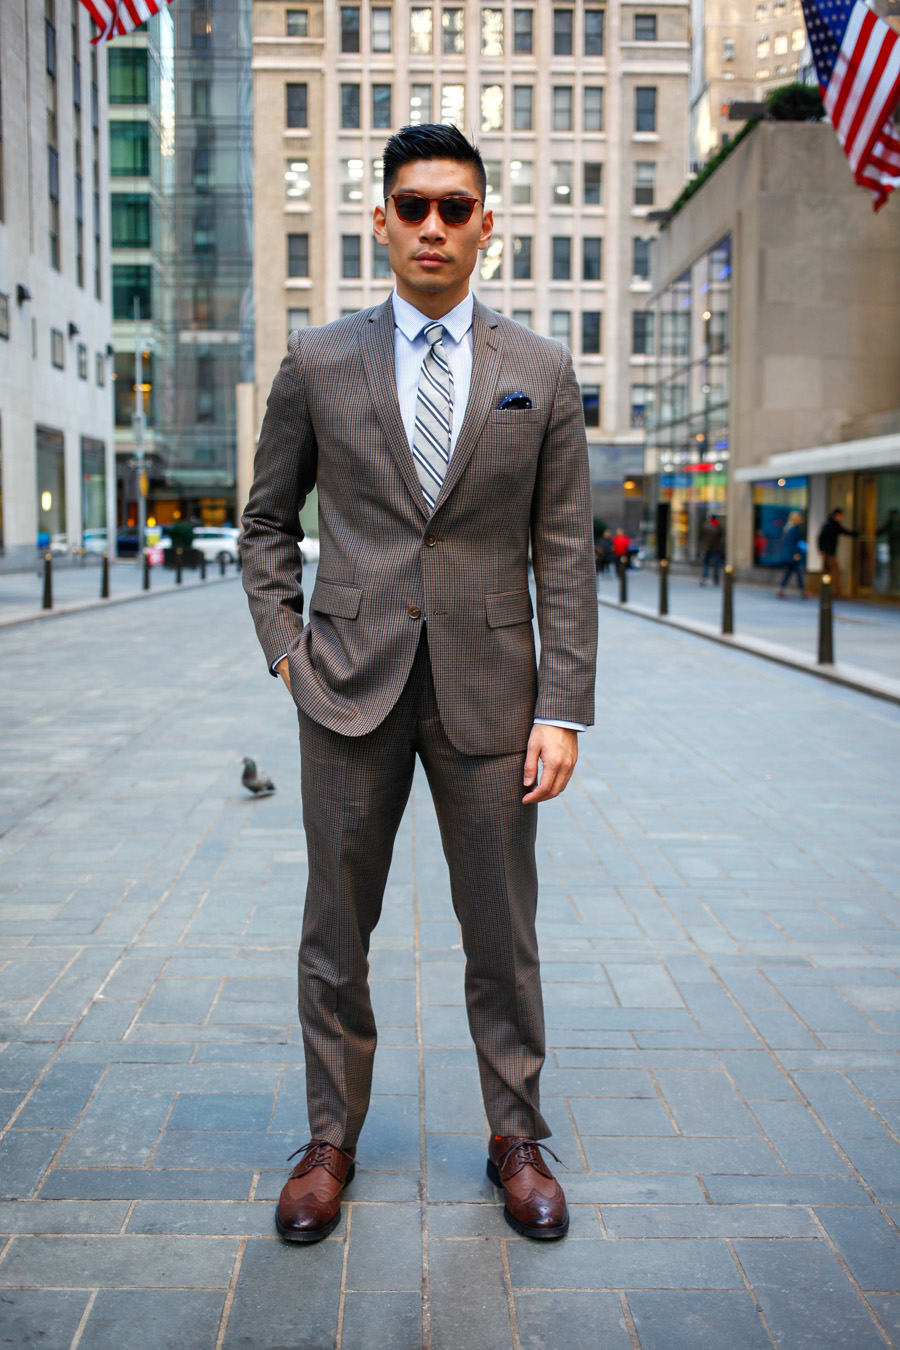 Levitate Style Bar Iii Suit Tie Menswear Olive Three Piece